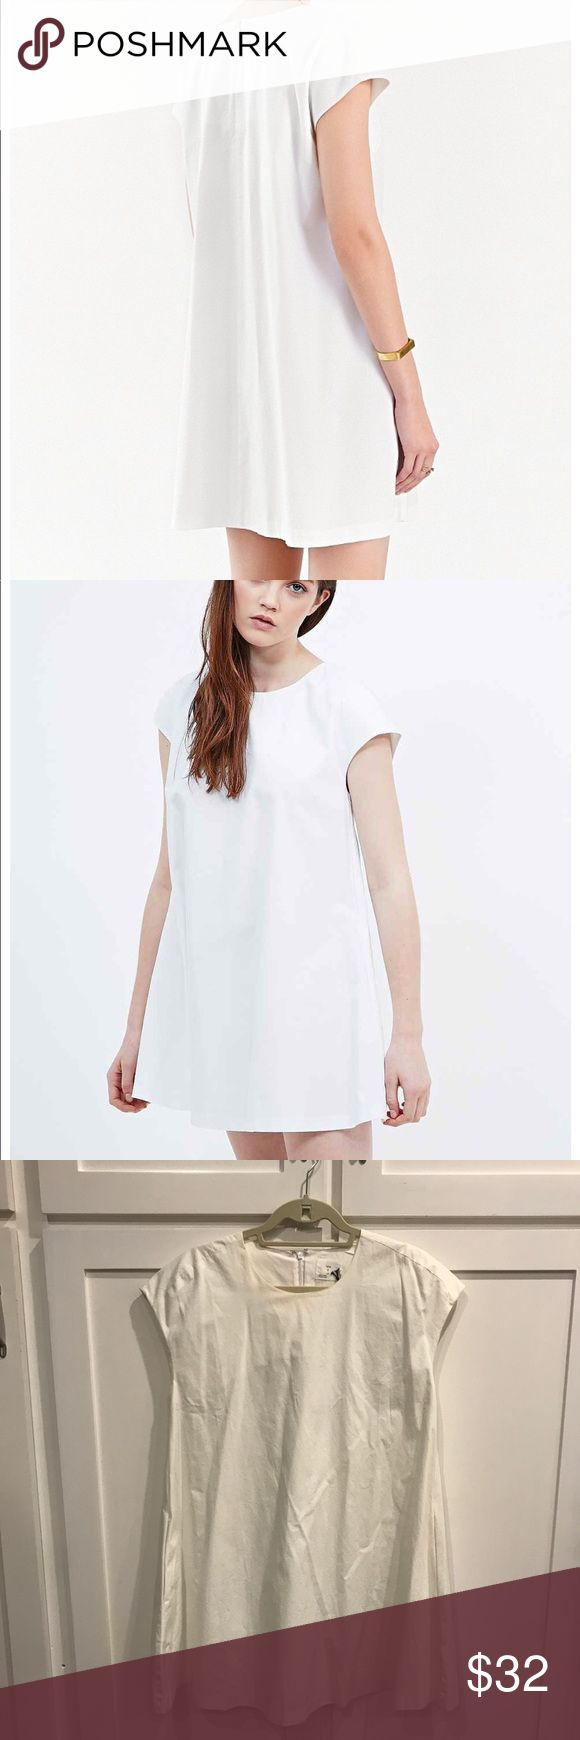 "White ""Half Moon"" mini shift dress Simple easy mini dress/tunic by Alice for urban outfitters. Simple crew neck line, pockets, hits mid thigh, back zip, slight trapeze shape. Faint yellowing by neckline though price reflects. Never worn, tags attached. 31"" from shoulder to hemline. 30"" across chest. Happy to wash before shipping though tags will be detached (I can include in package of you want) Urban Outfitters Dresses Mini"